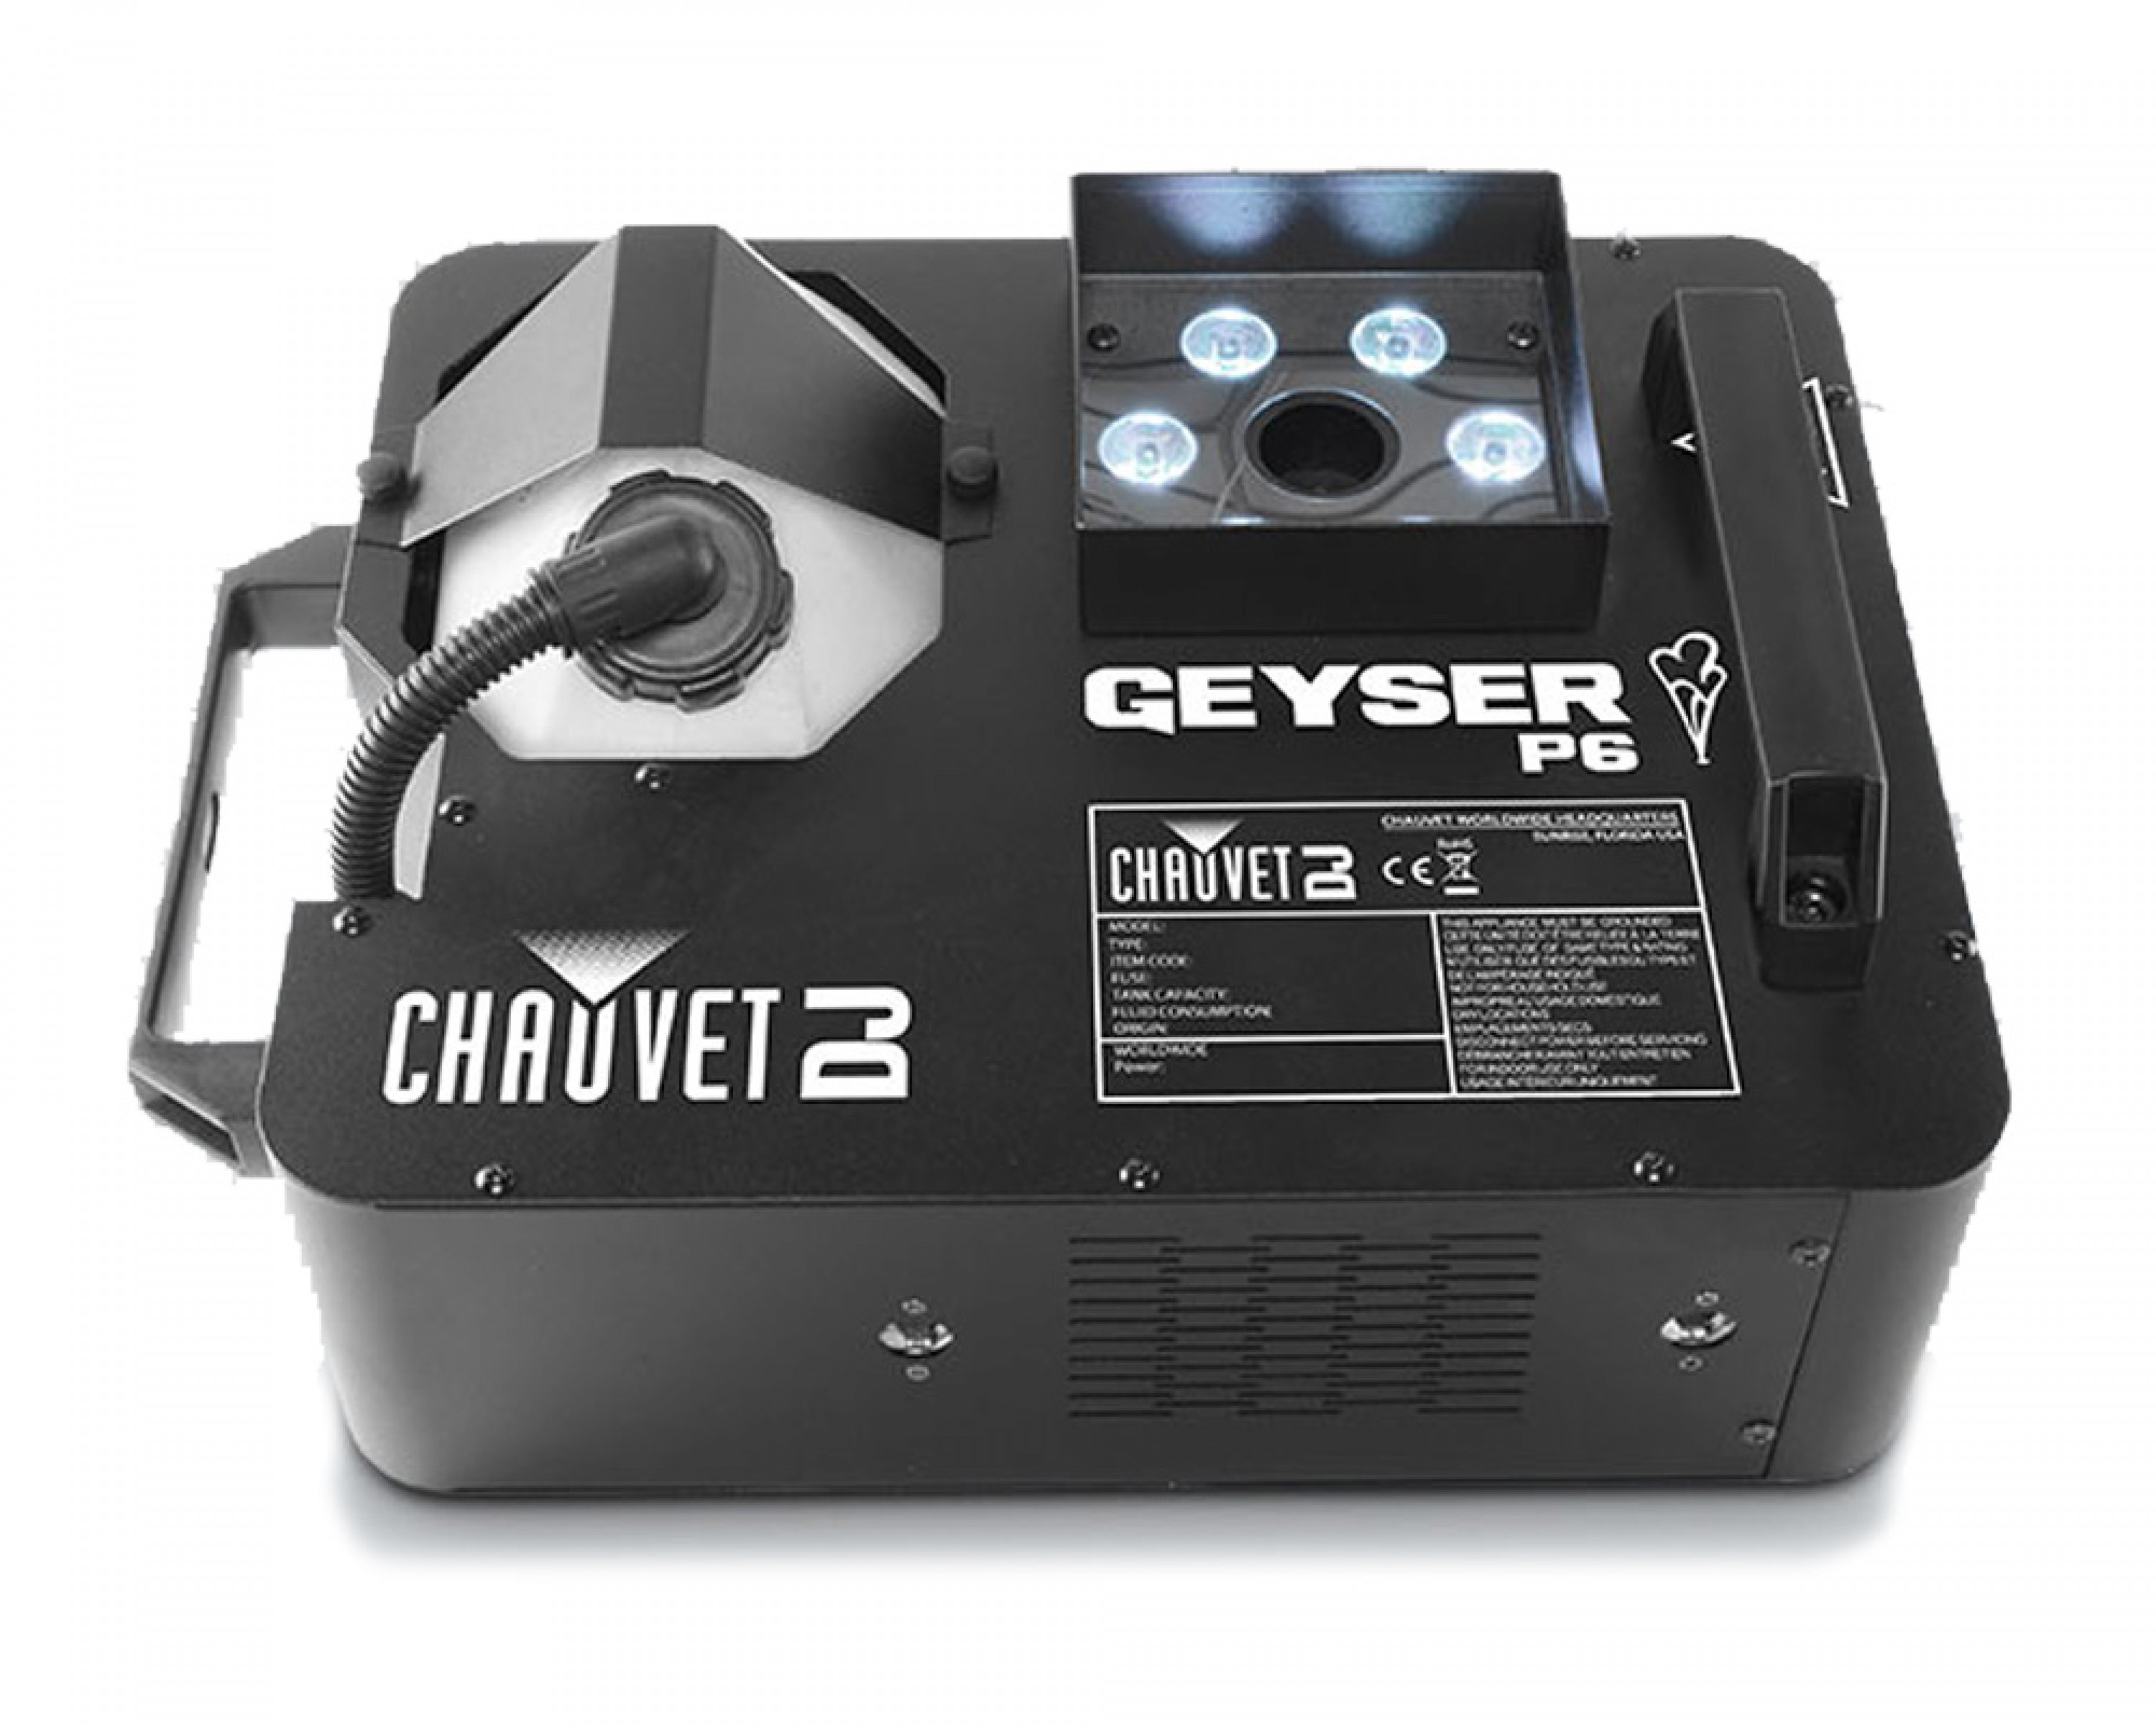 Chauvet Geyser RGBUV smoke machine